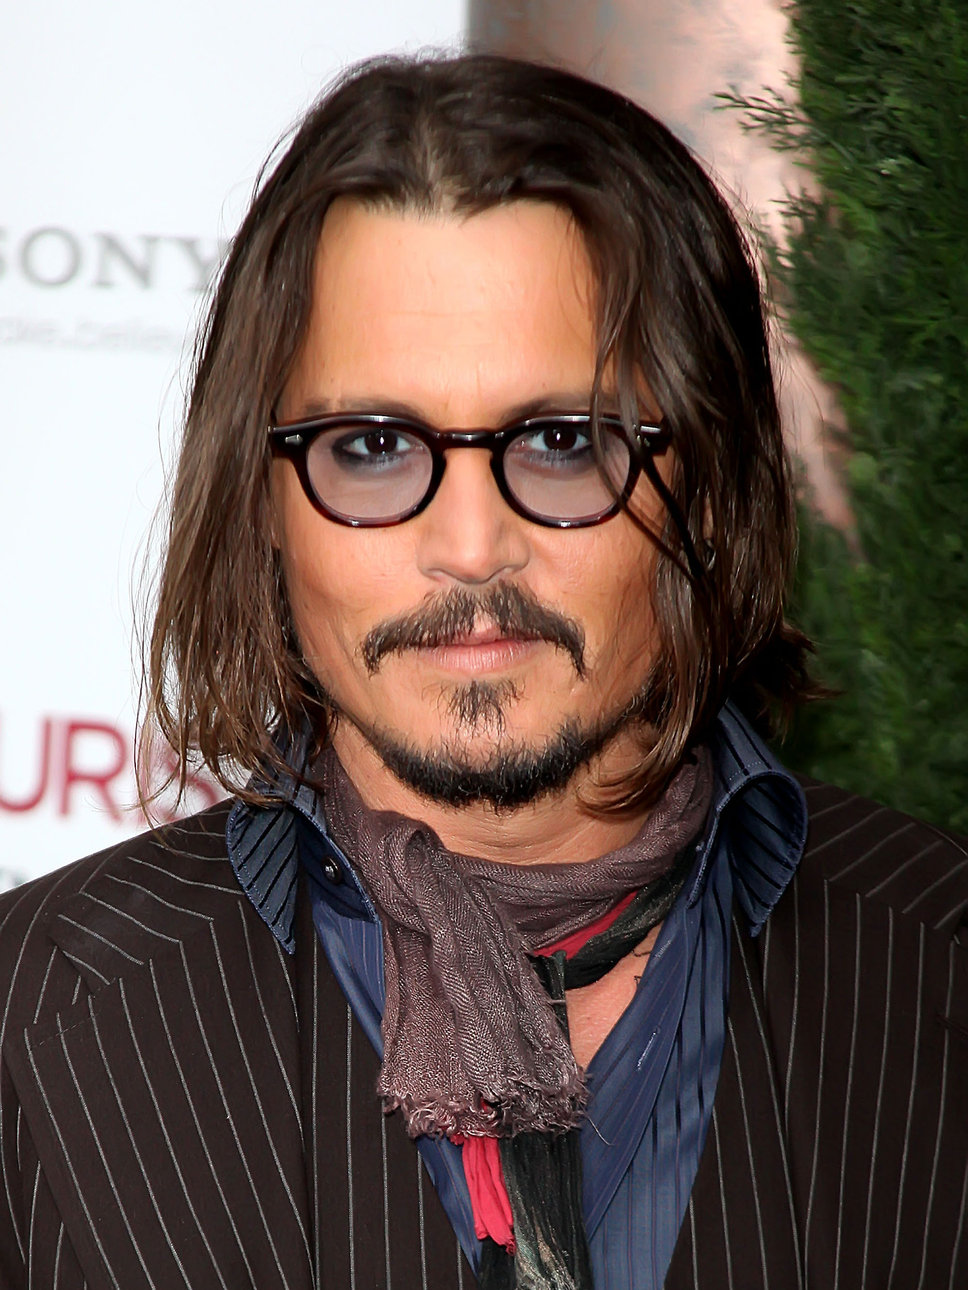 Dede Aisyah: Johnny Depp 05